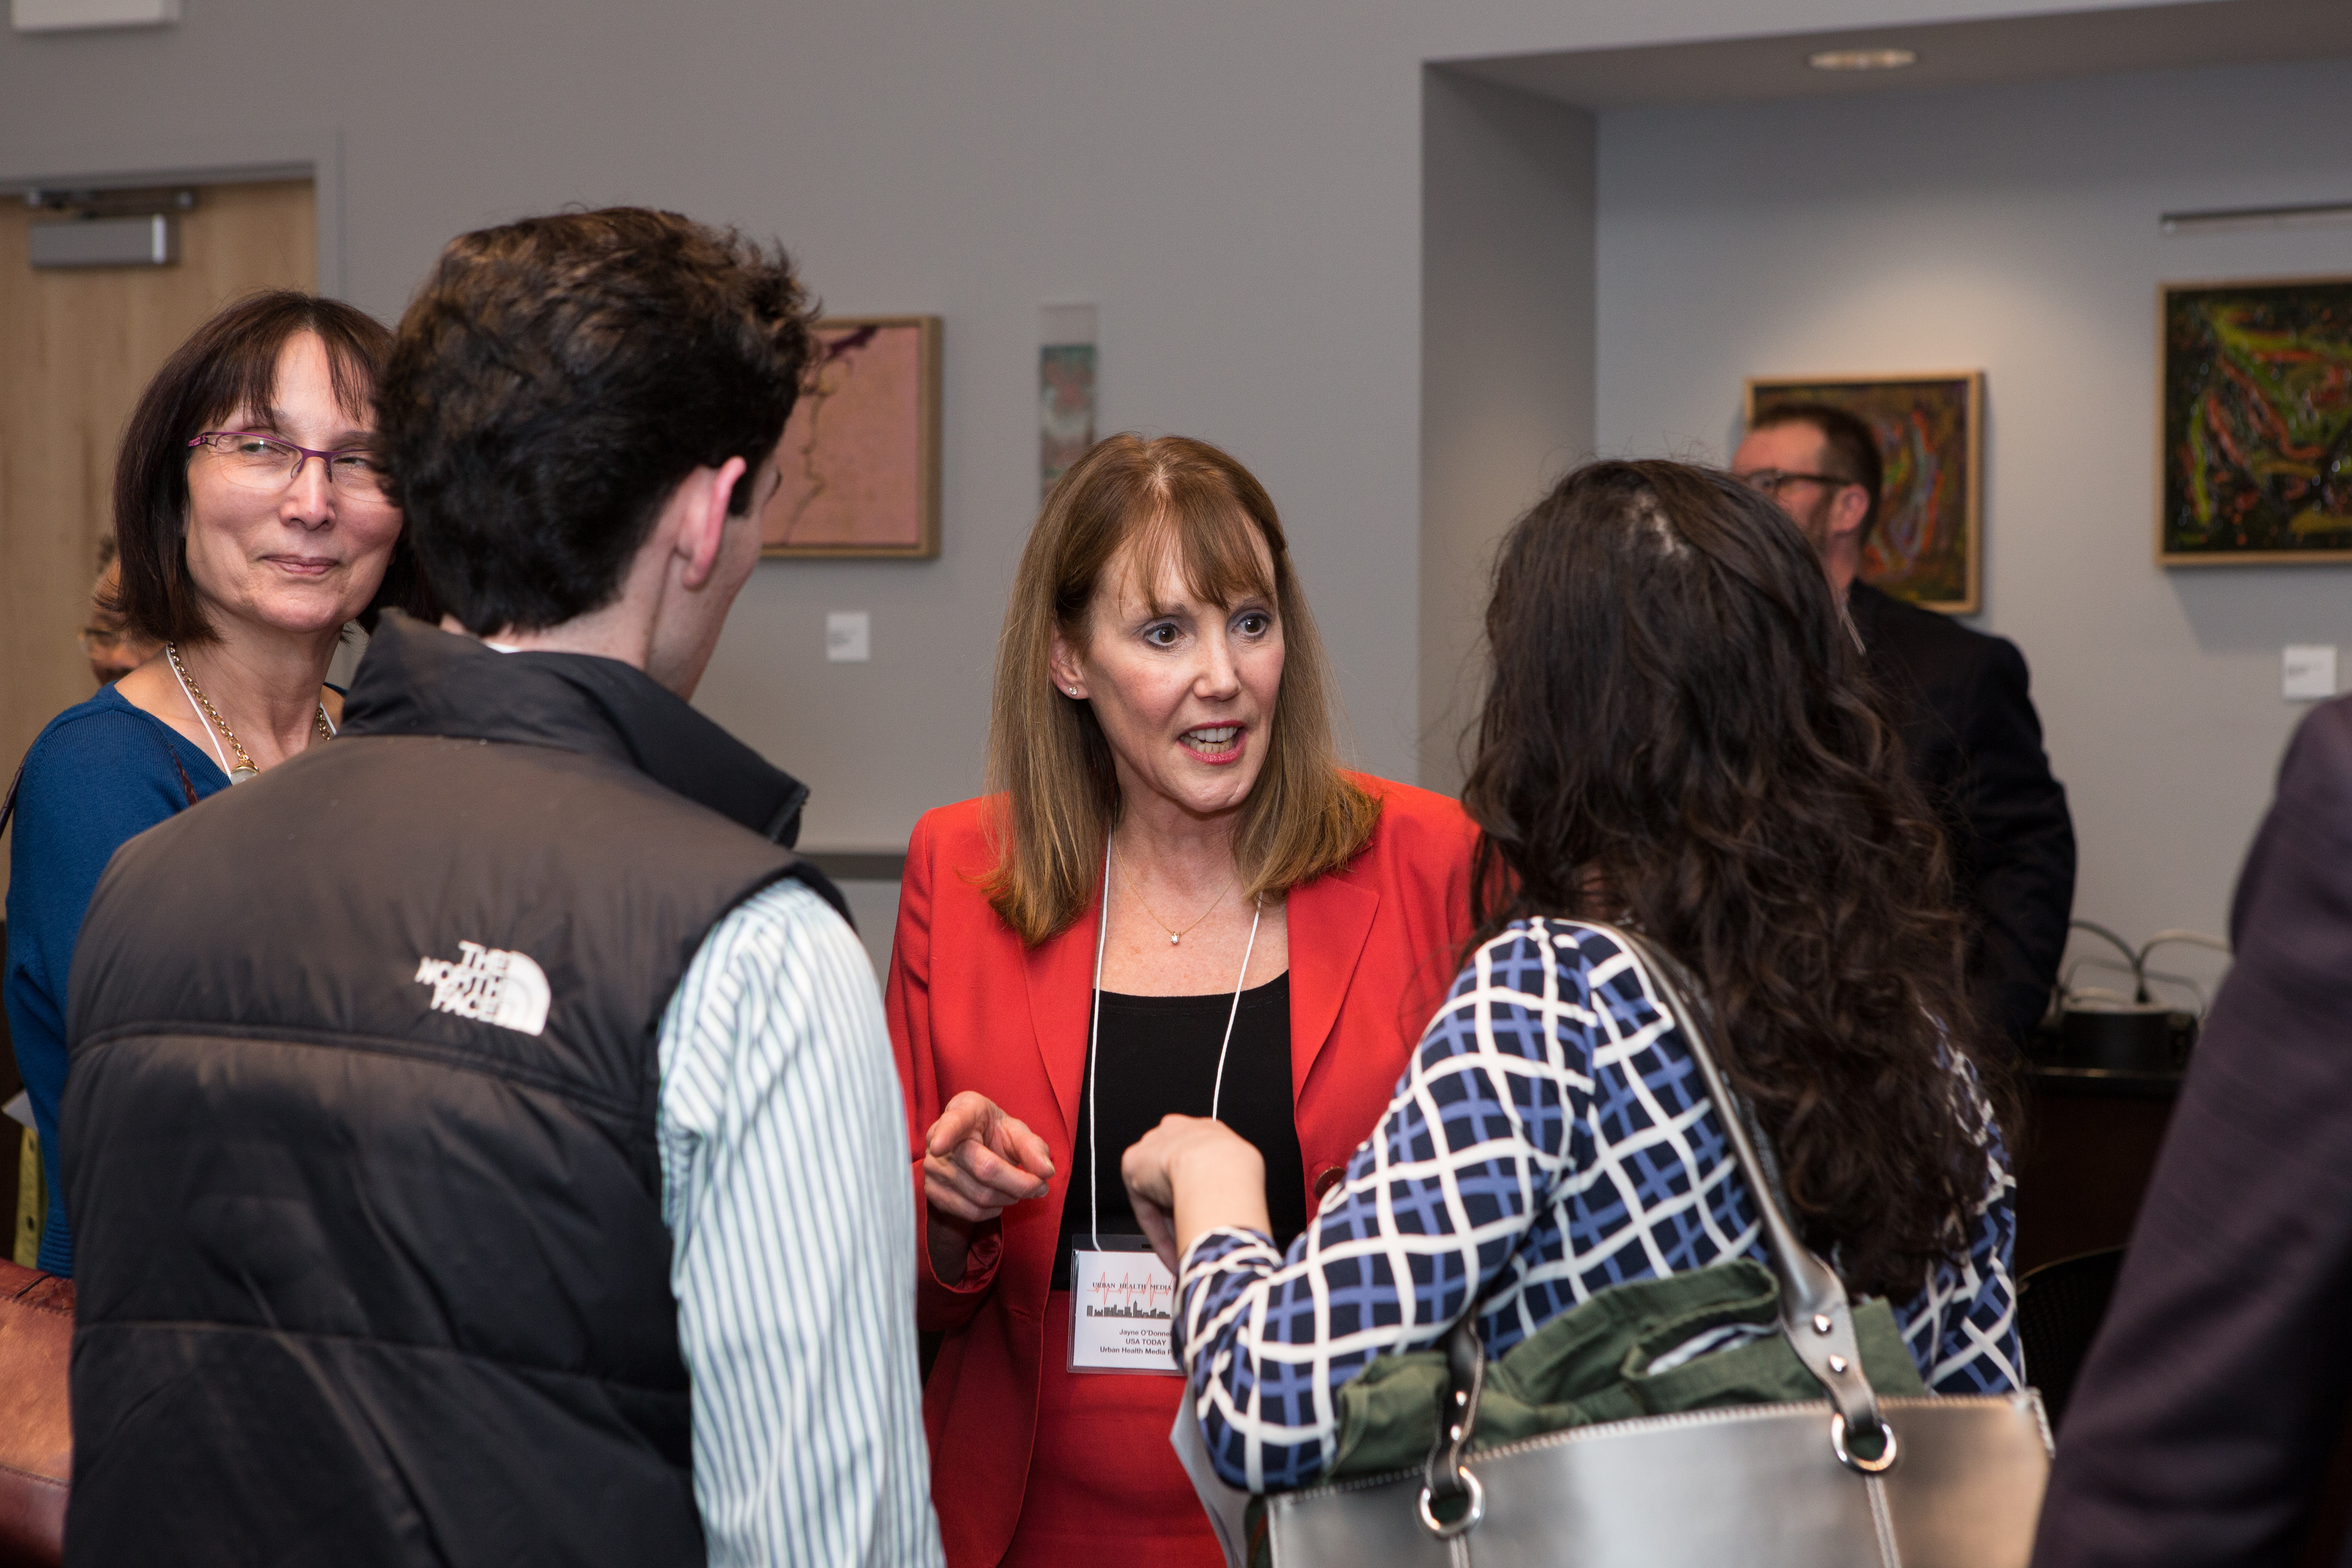 Jayne O'Donnell, cofounder and director of the Urban Health Media Project, greets guests at launch party.